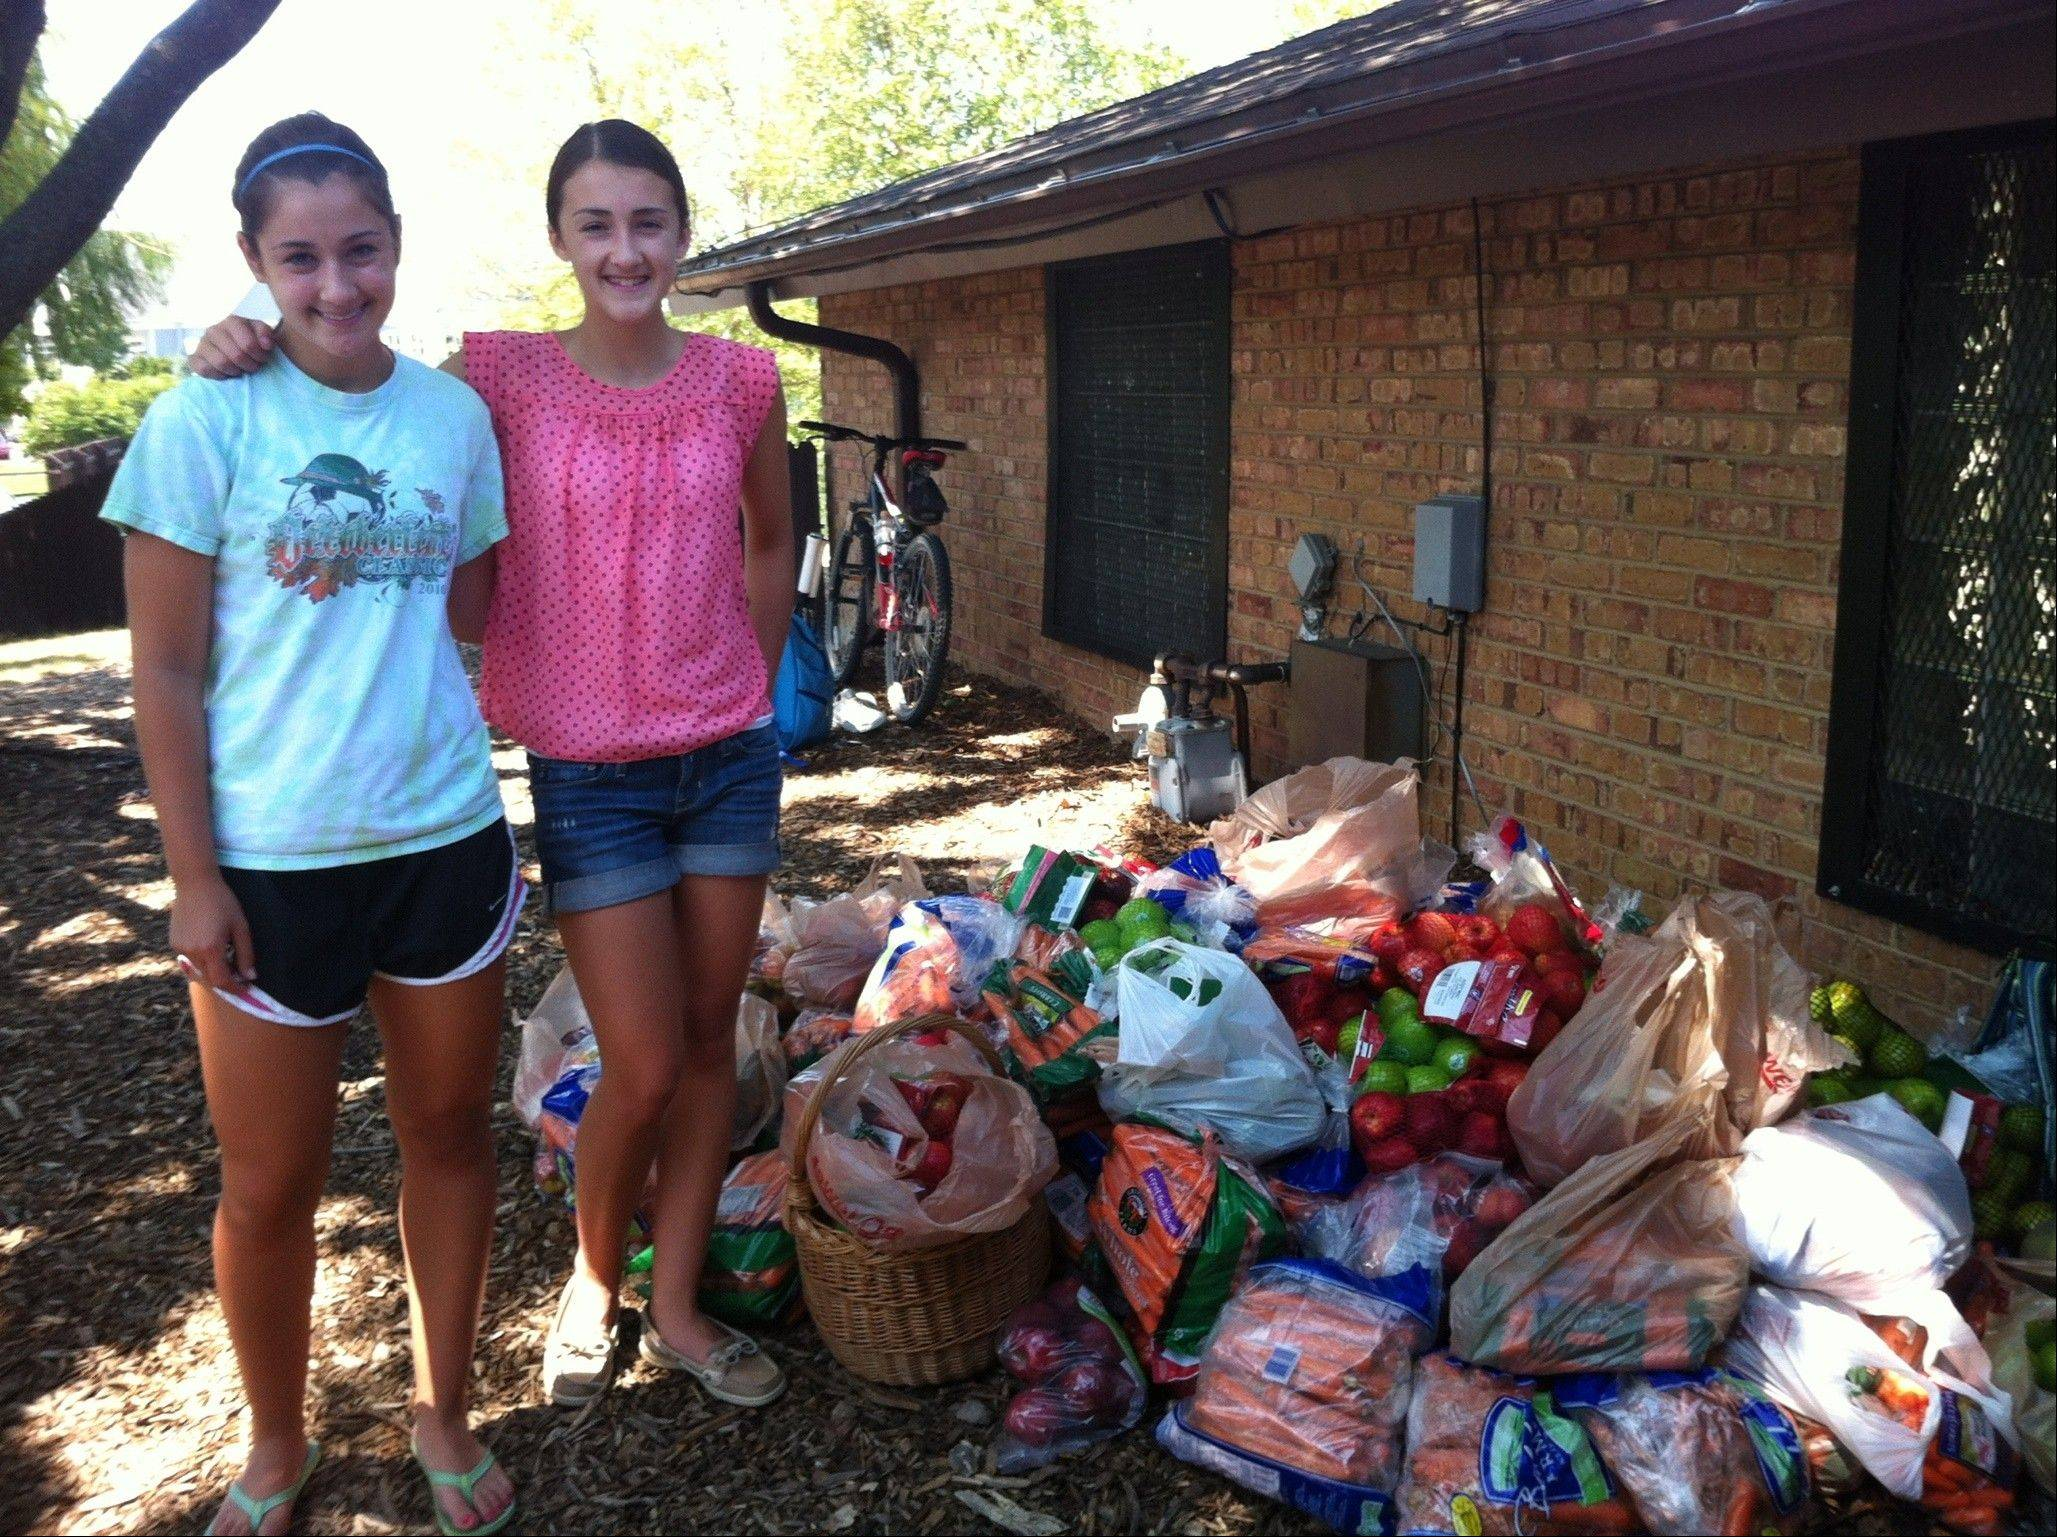 Hannah and Emma Koropp of Wheaton created the Apples and Carrots Fragile Food Drive in 2010 and continue to collect perishable items for families in need.